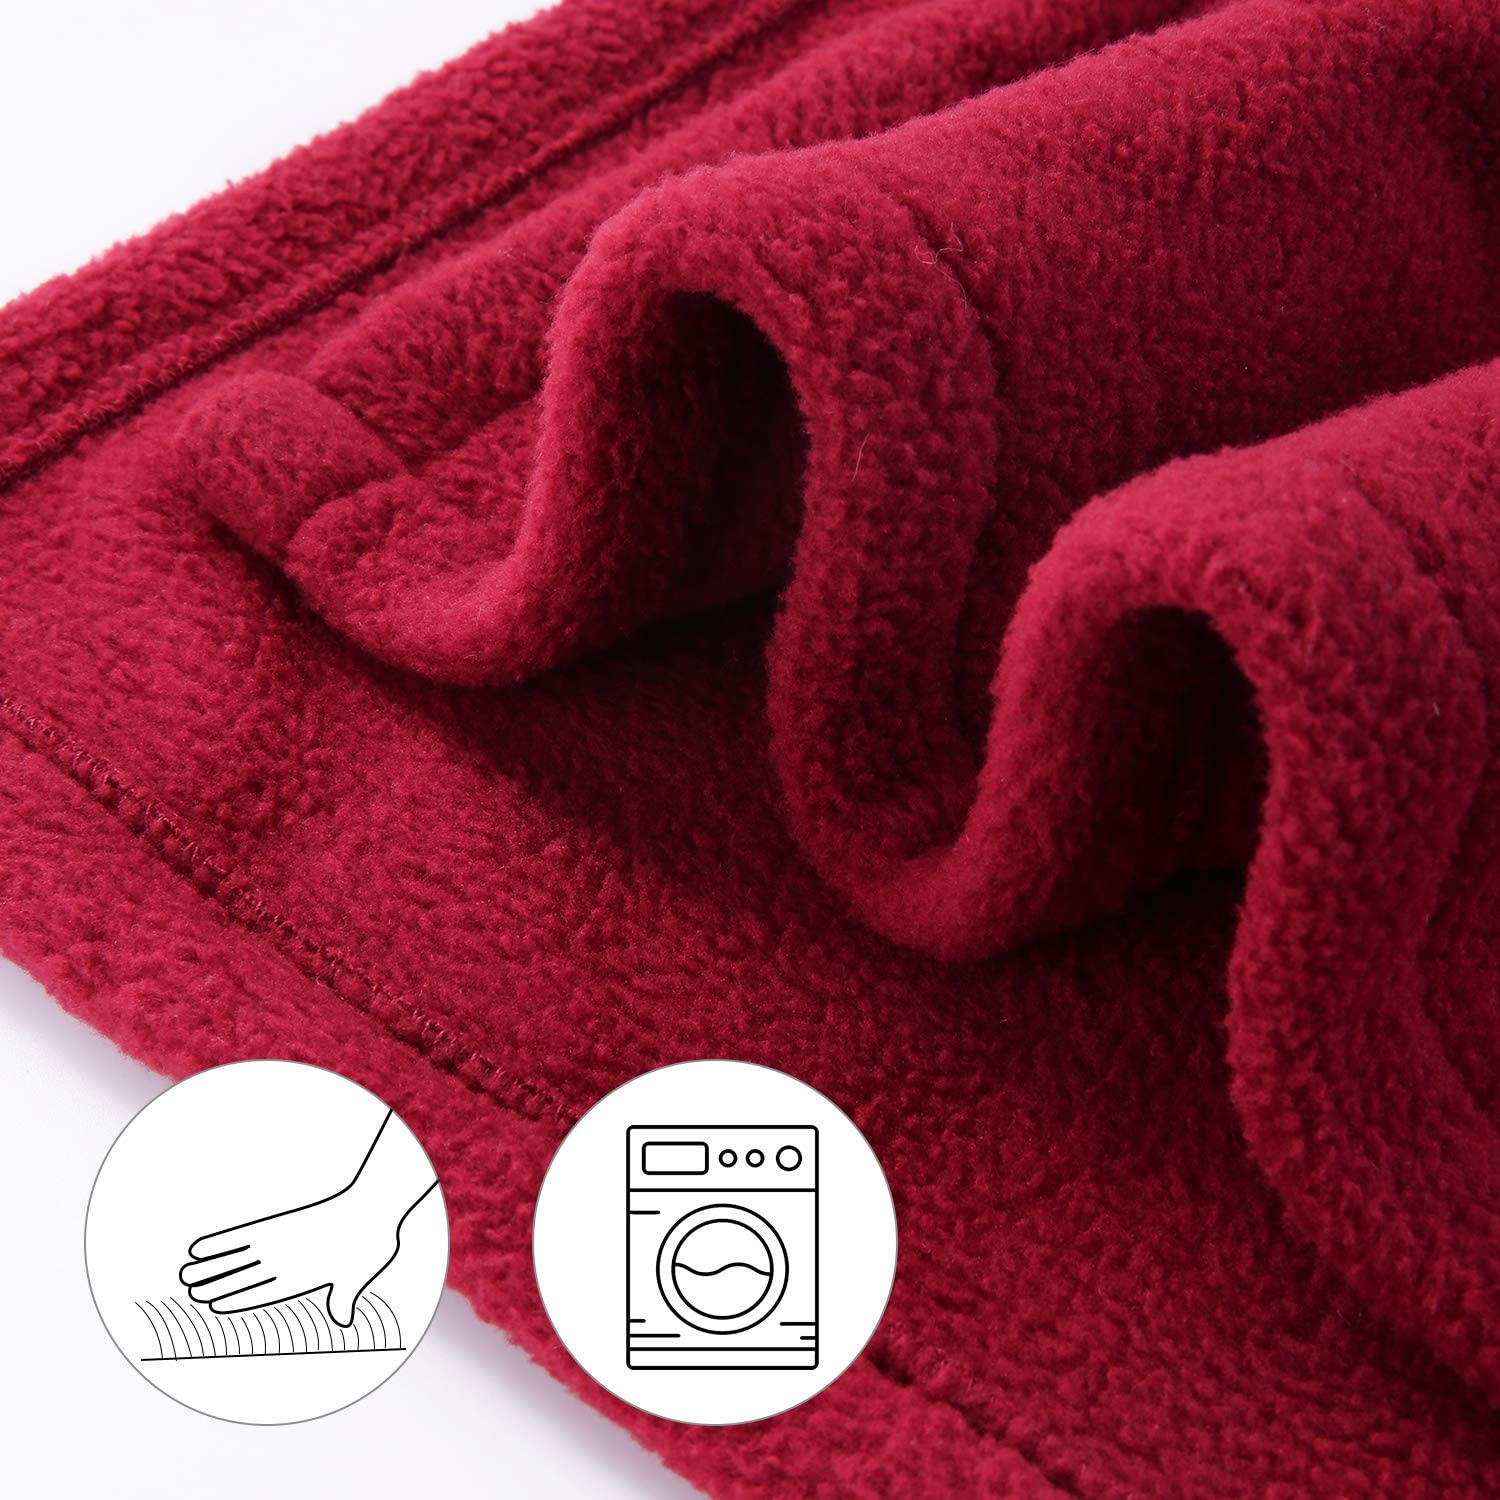 MaxKare Electric Blanket Heated Throw 77 x 84 Full Size Fleece Full Body Warming /& Extra Large Size Gray 4 Heating Levels and 10H Auto-Off with Heat Evenly /& Overheating Protection